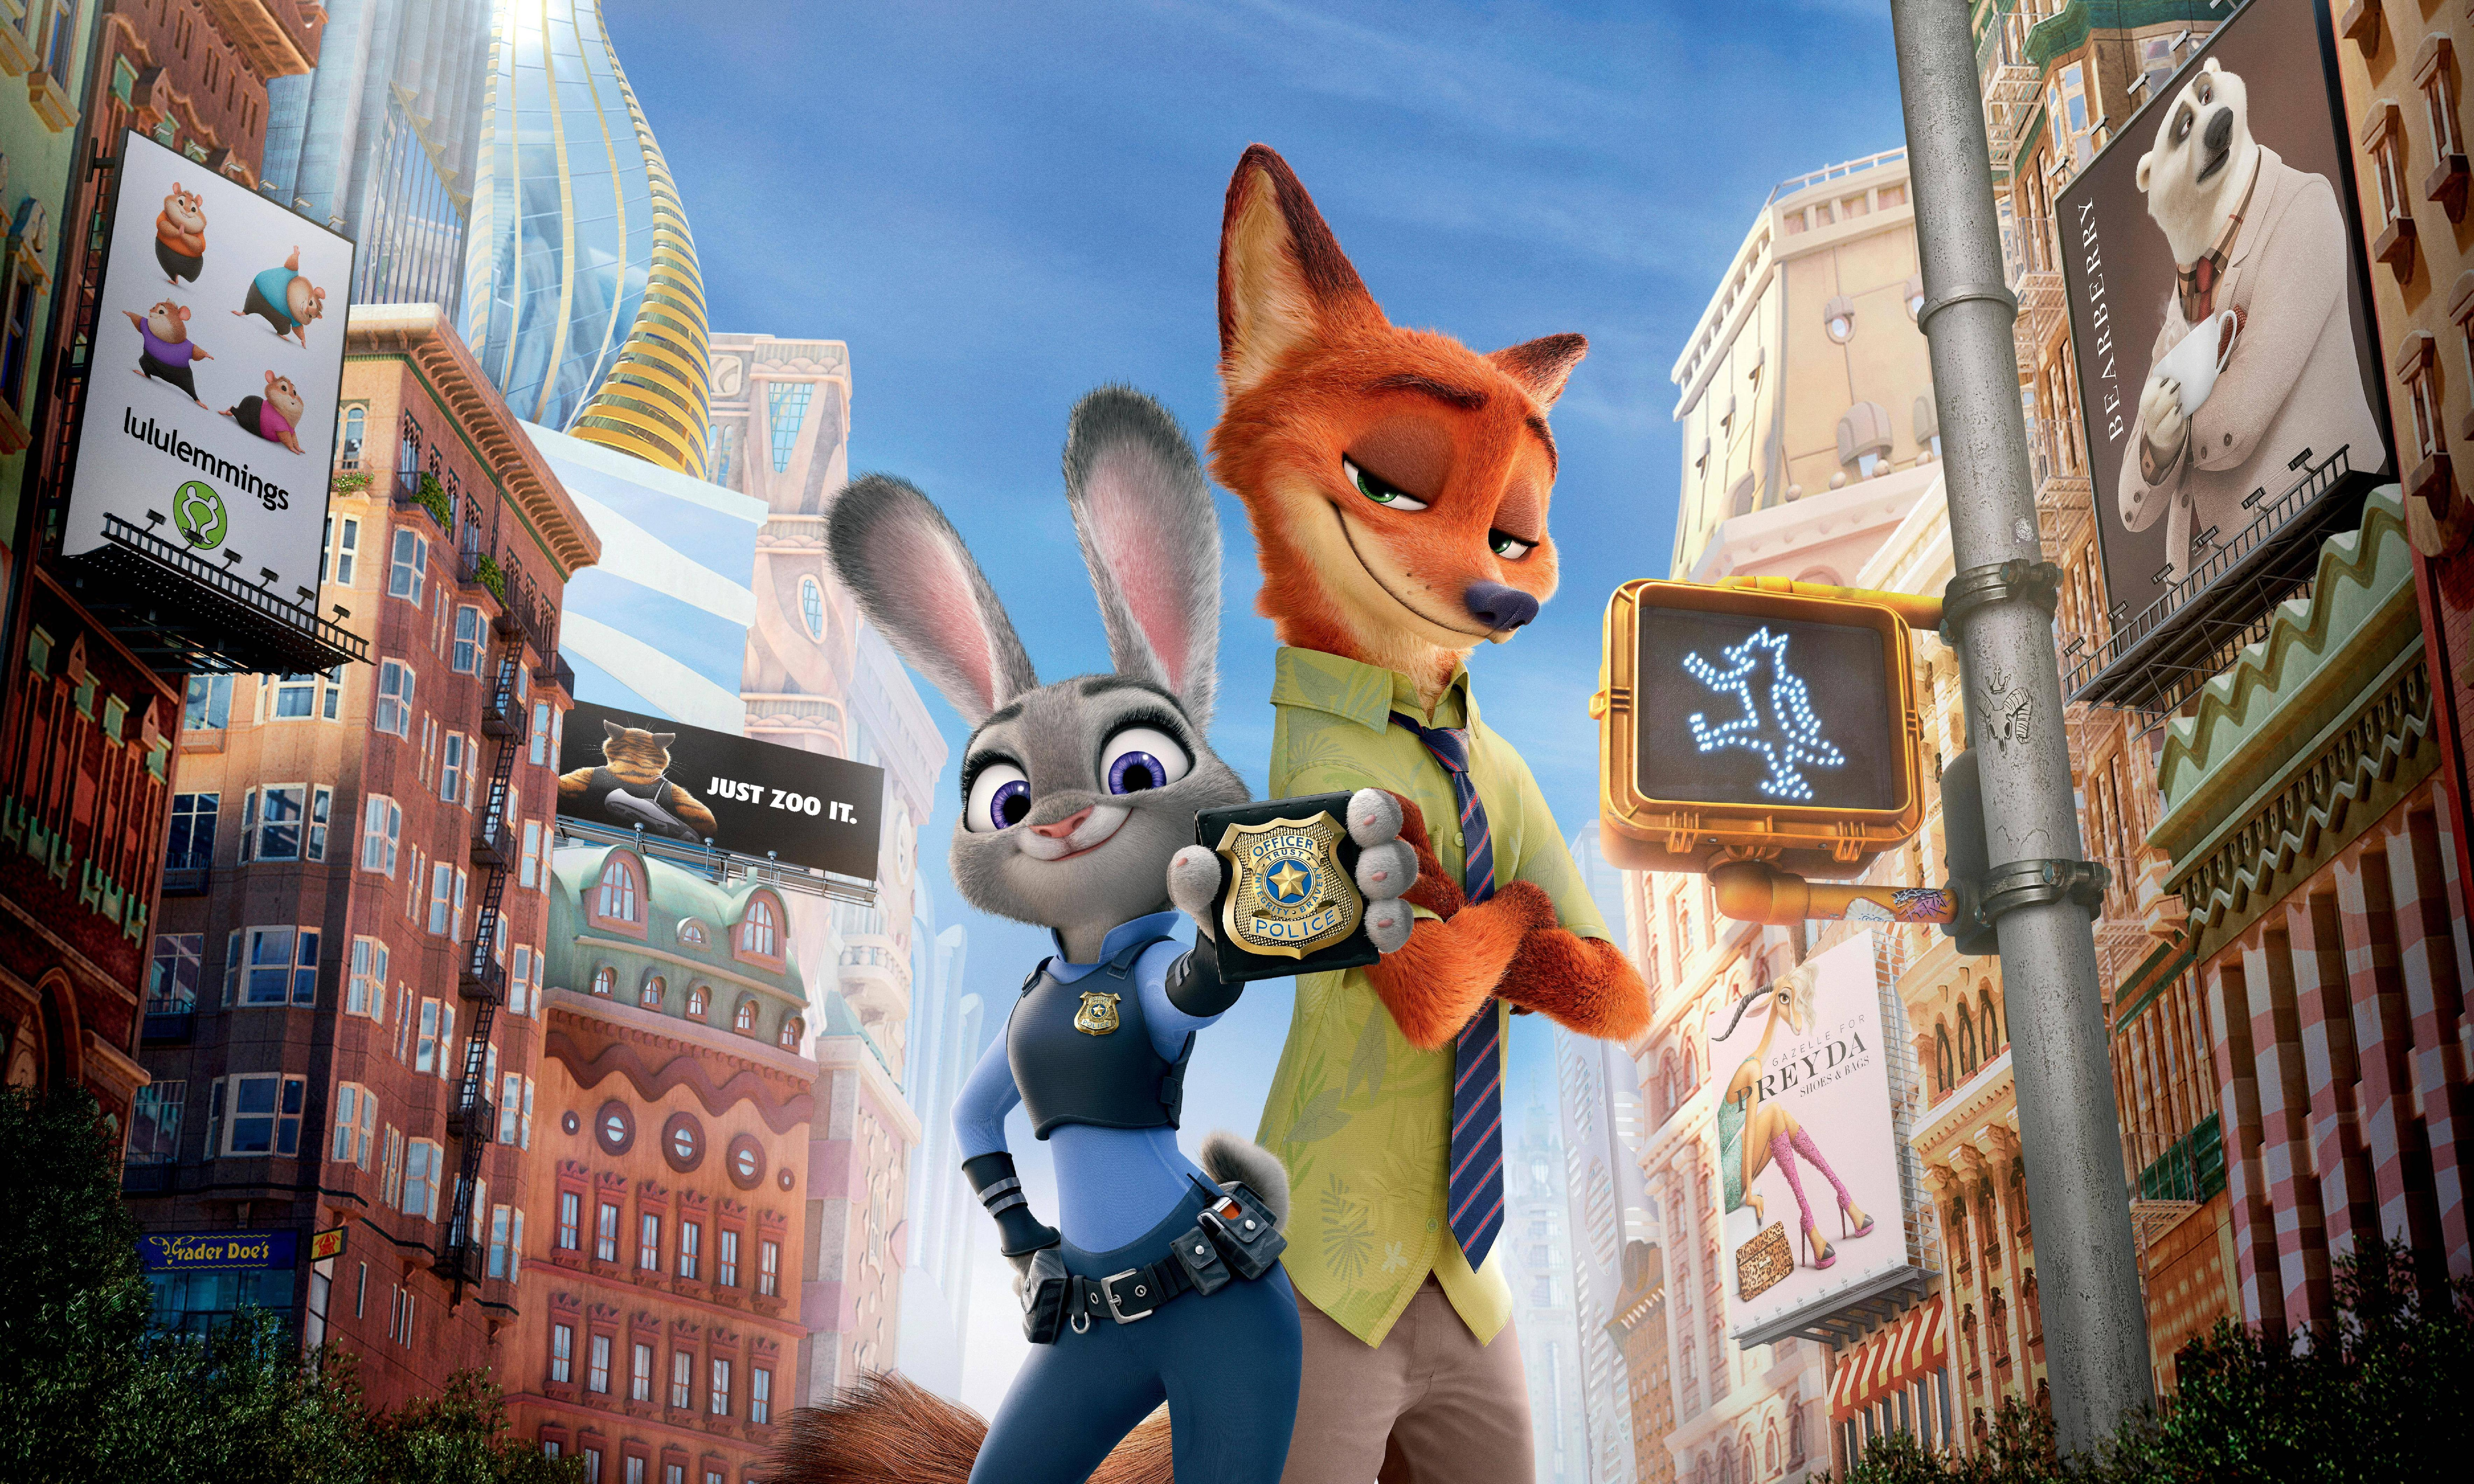 zootopia judy hopps and nick